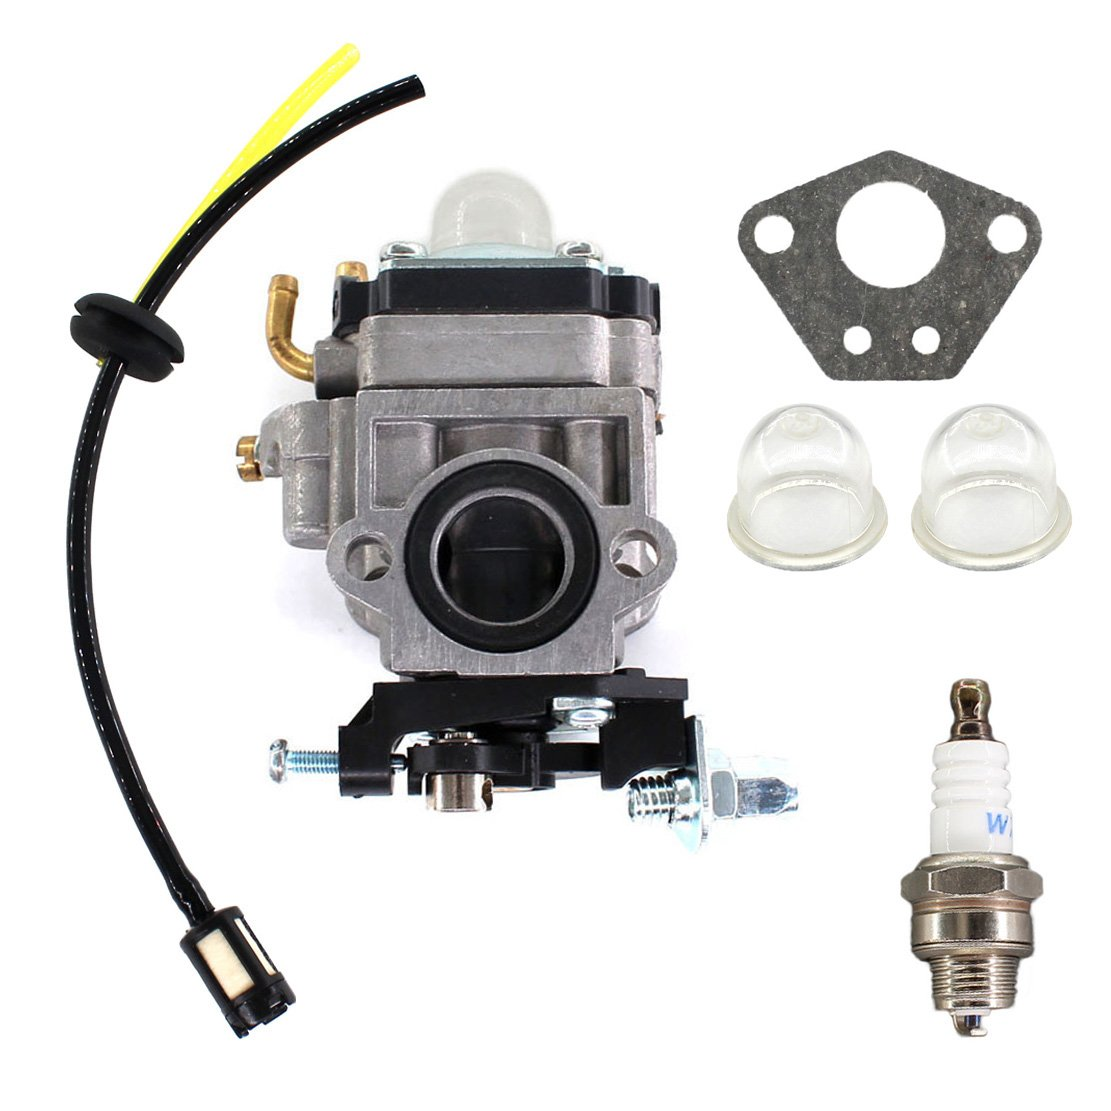 USPEEDA Carburetor Carb for X1 X 2 X3 X 7 R1 FS509 FS529 Gas 43CC 49CC Pocket Bike GS Moon Motovox MVS10 13218 Fuel Line Filter Grommet Kit